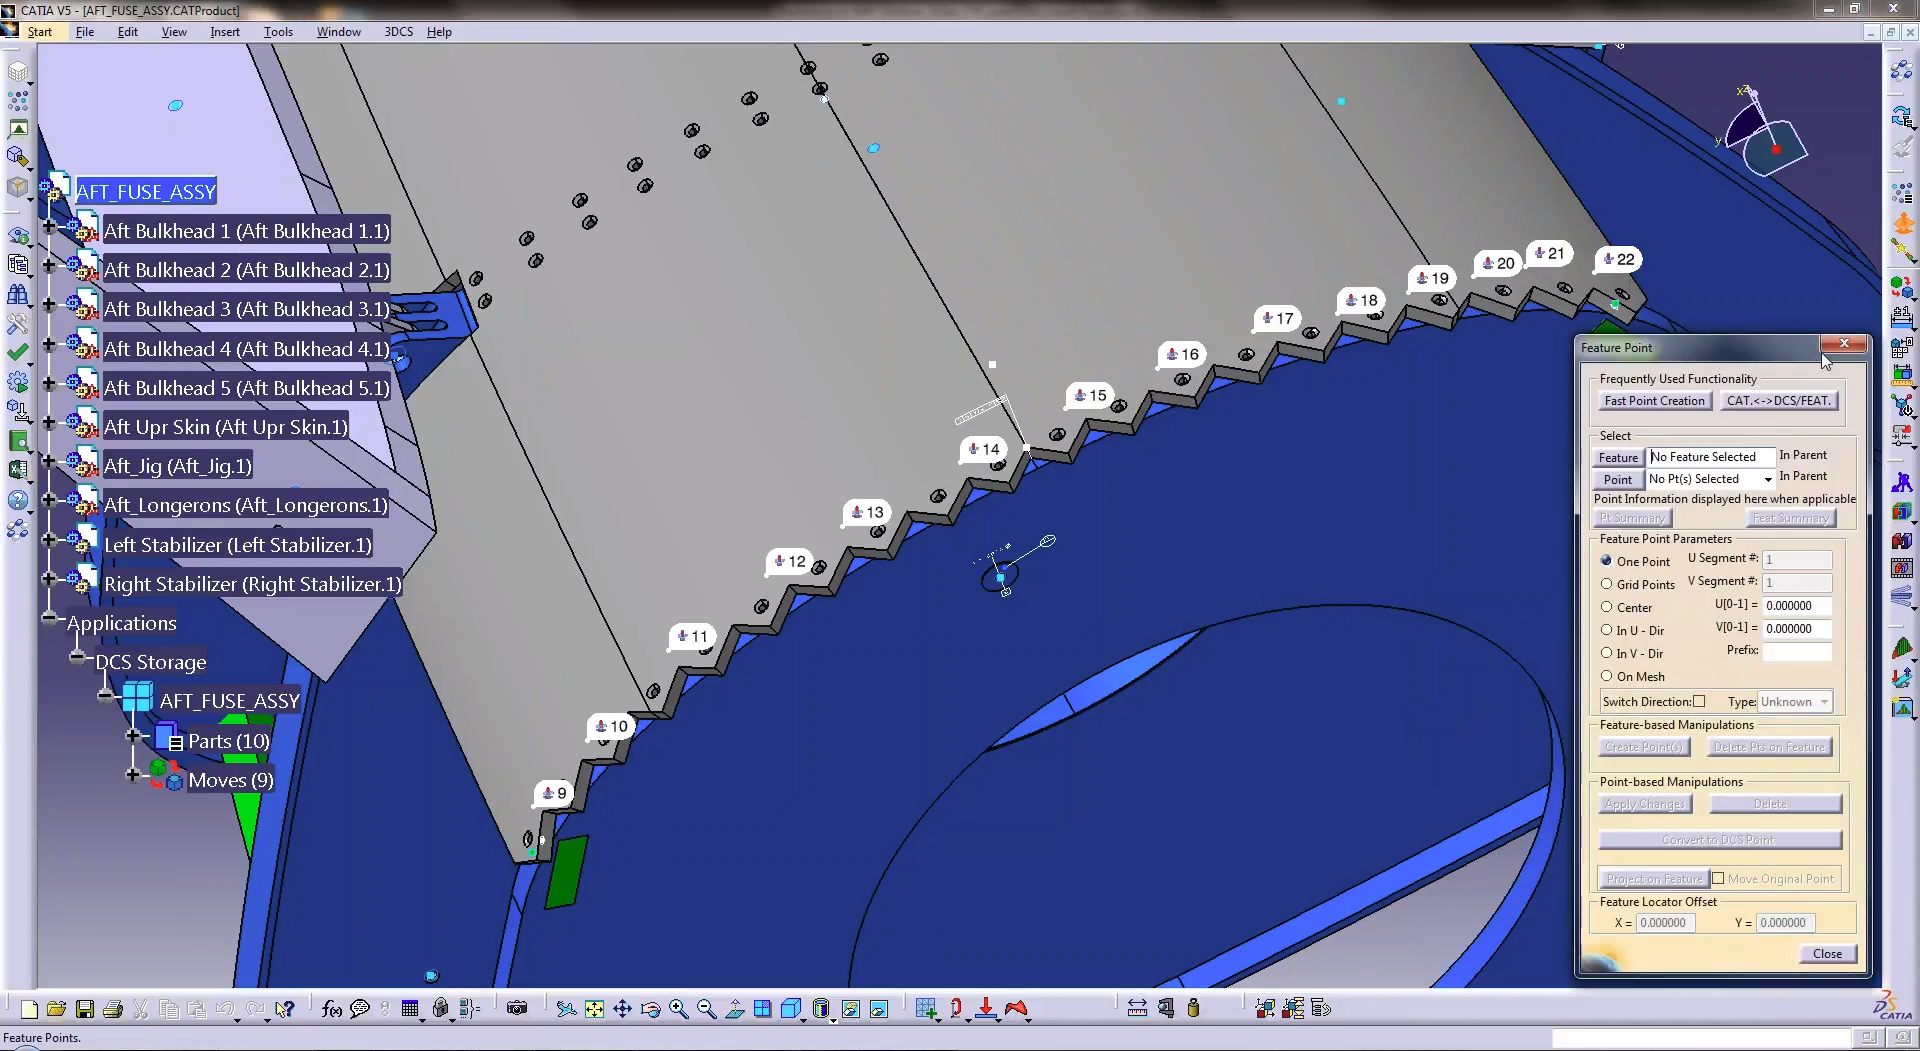 Back to Basics: How to Quickly Add Points, Moves and Tolerances to Your 3DCS CAD Model